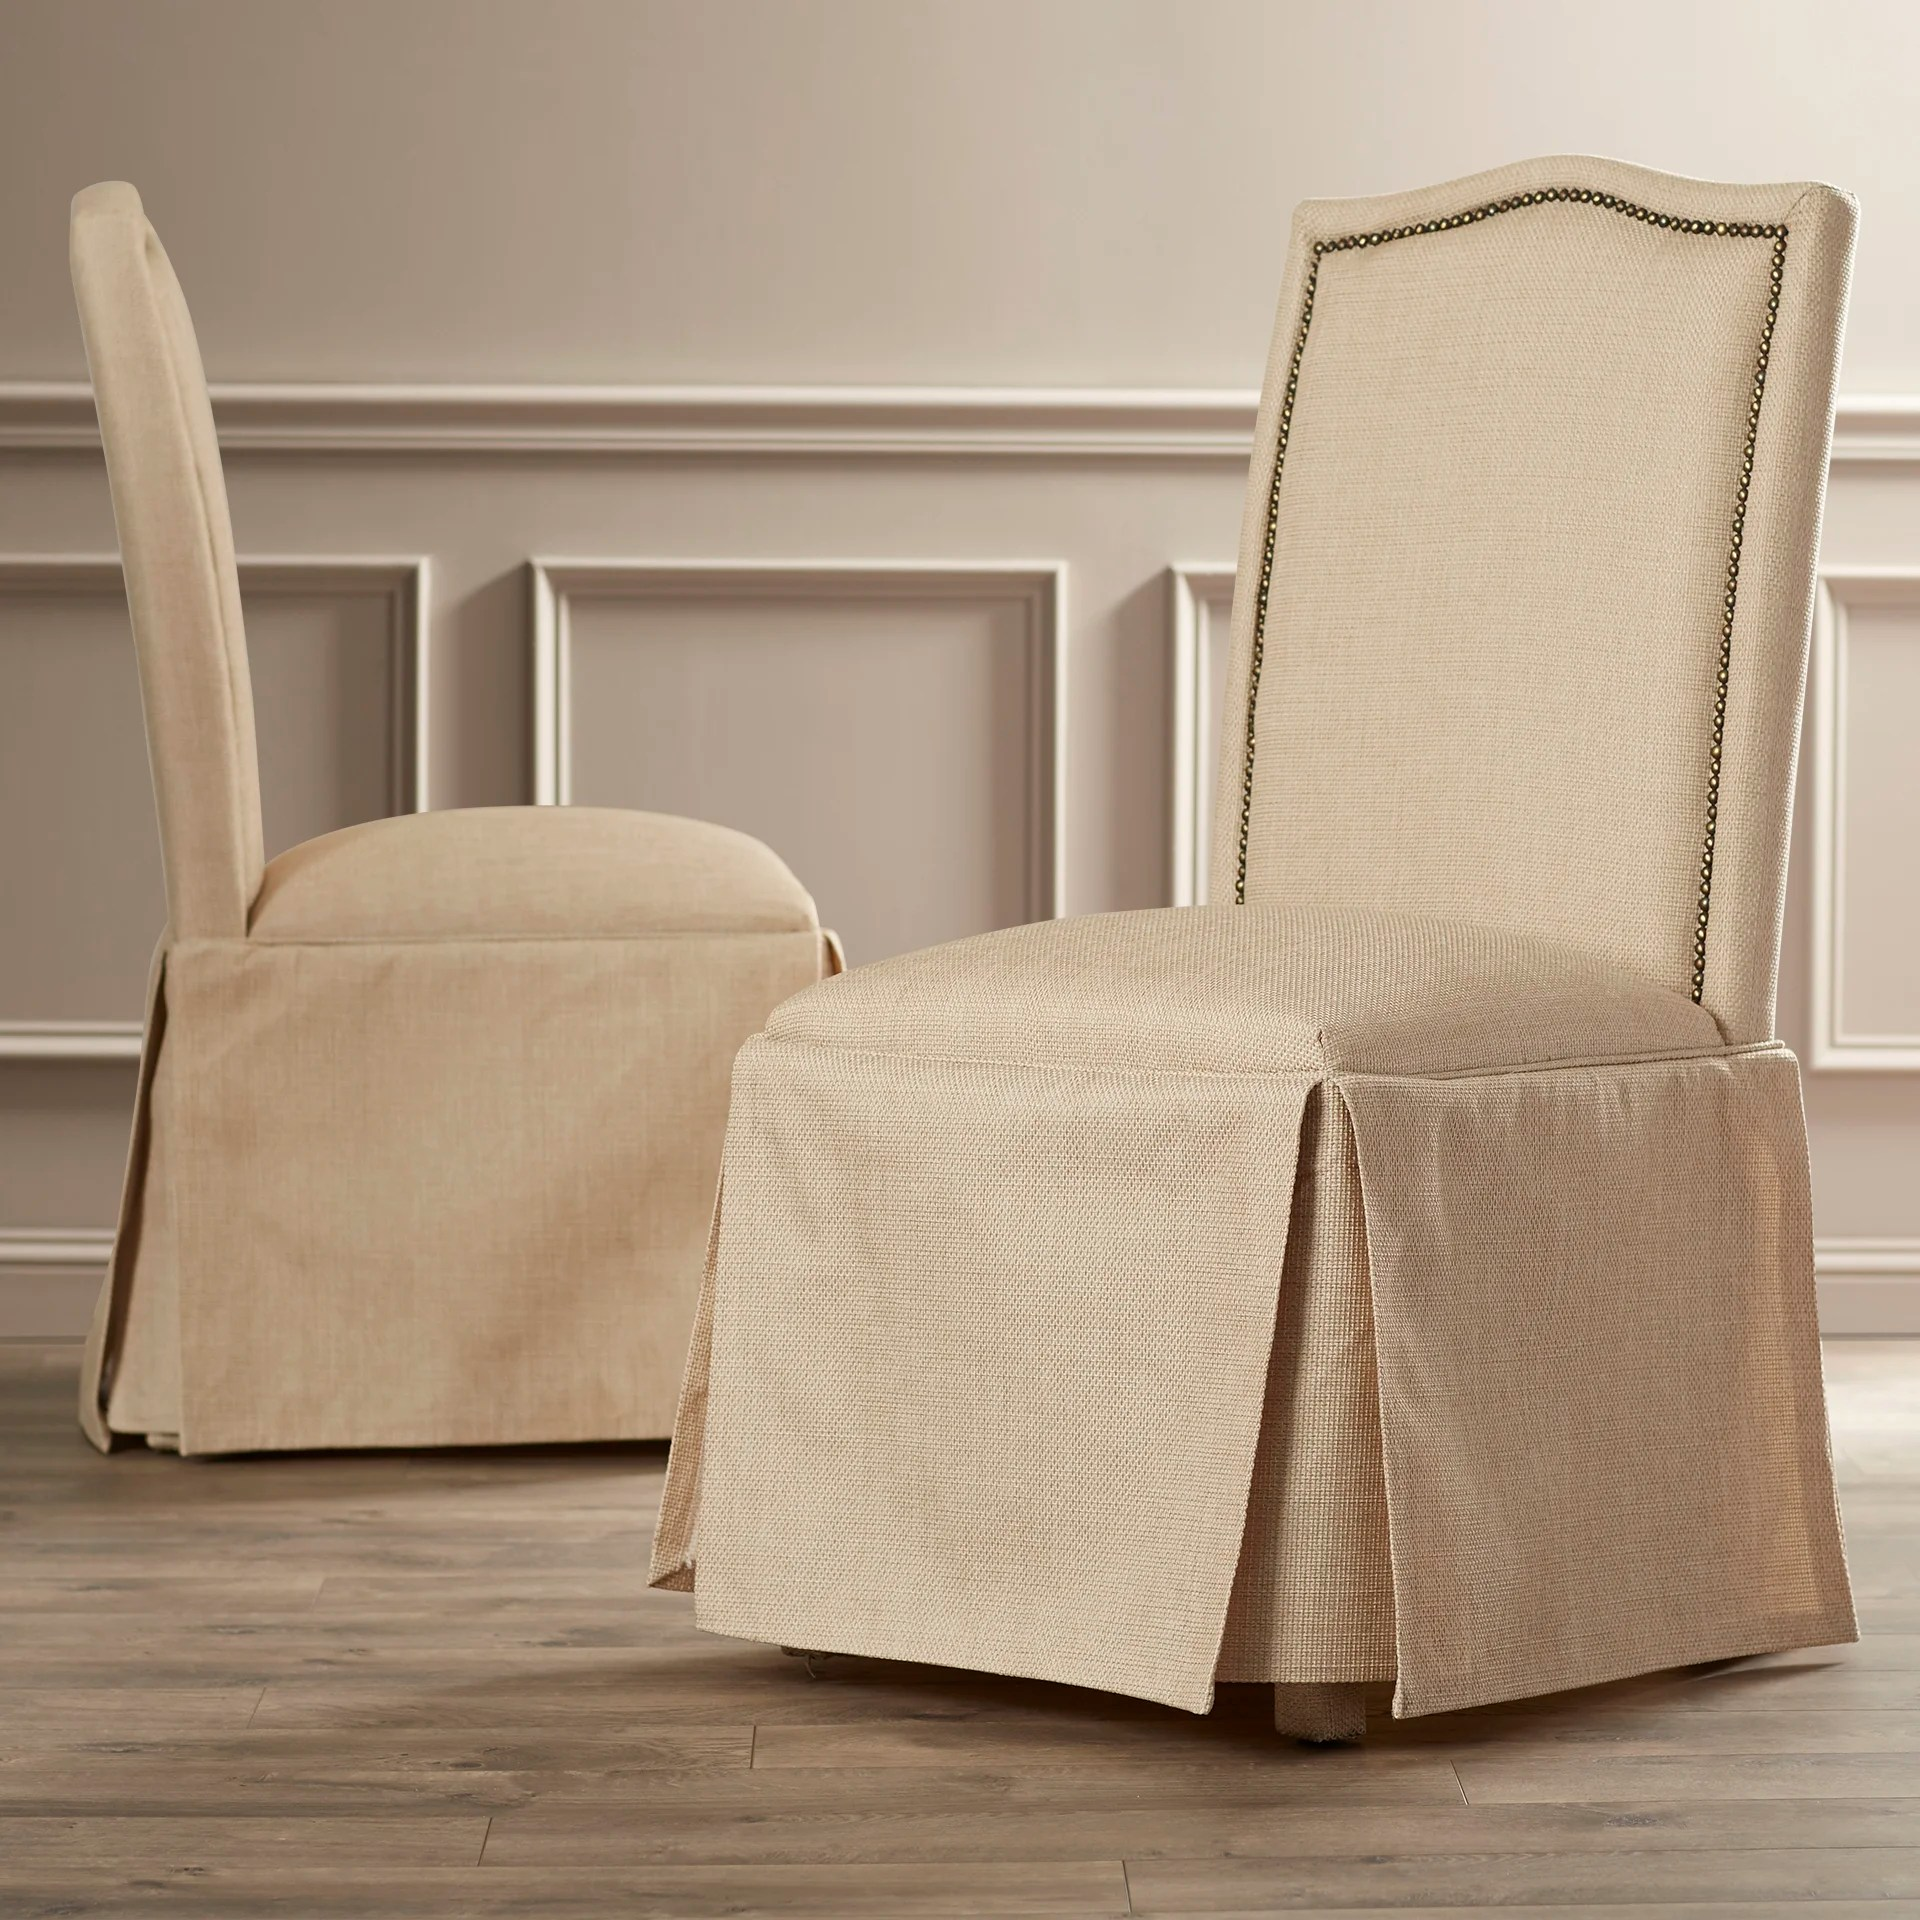 parsons chairs with skirt revolving chair bangladesh price alcott hill fredericksburg skirted parson and reviews